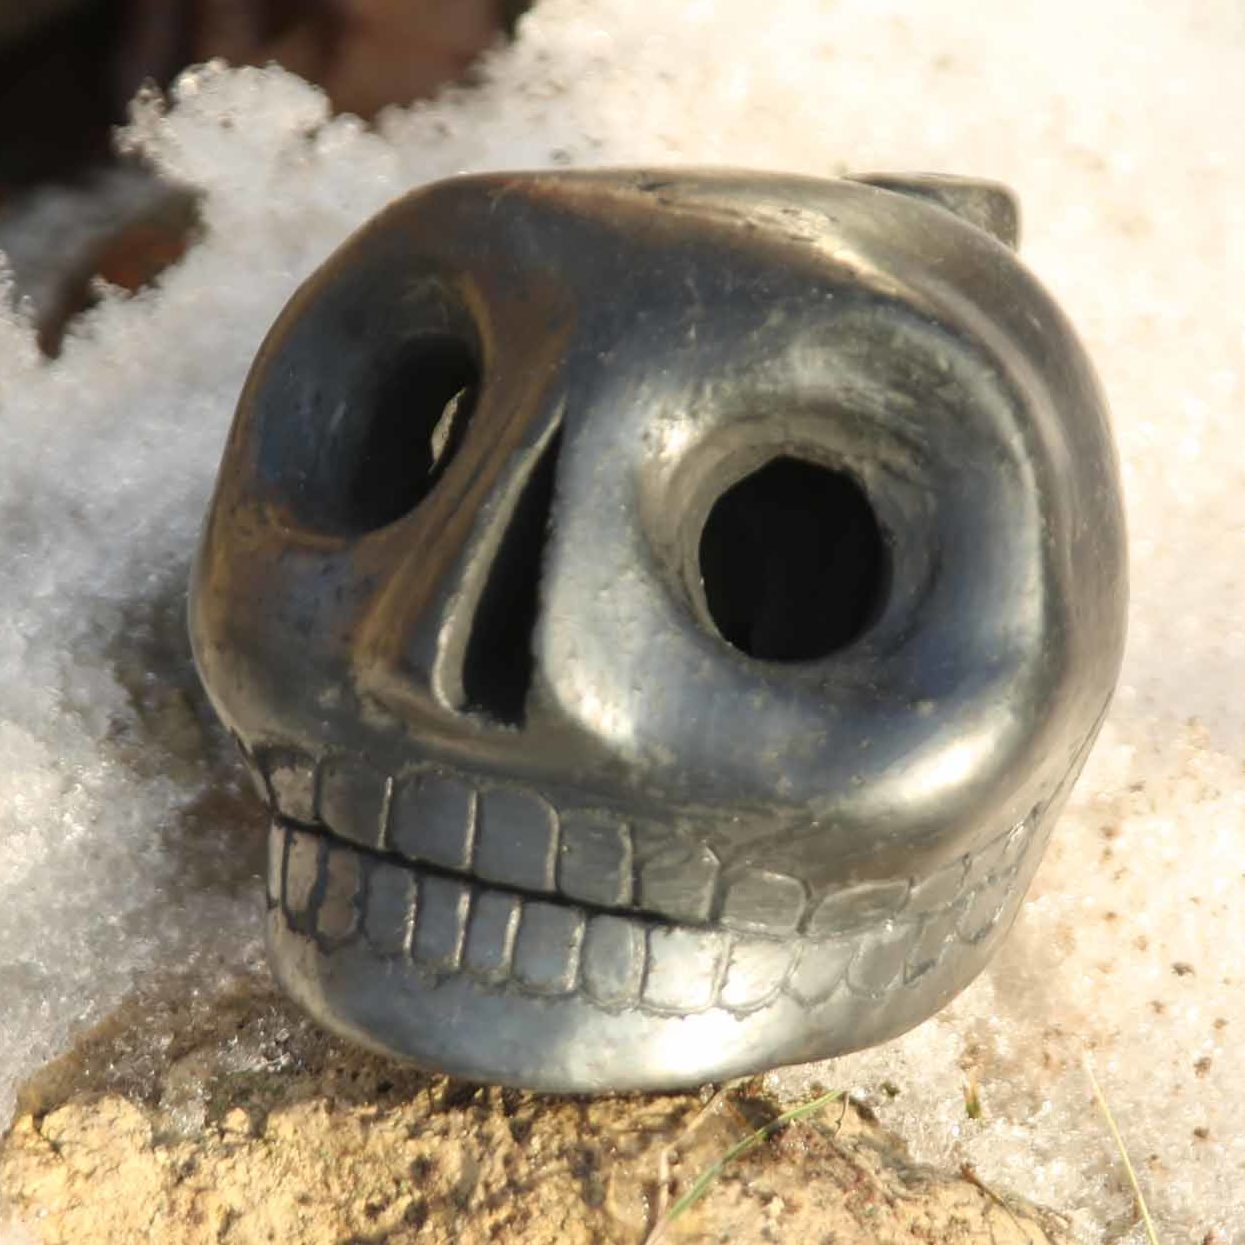 Aztec Death Whistle scary frightening sounds gut wrenching scream!!!